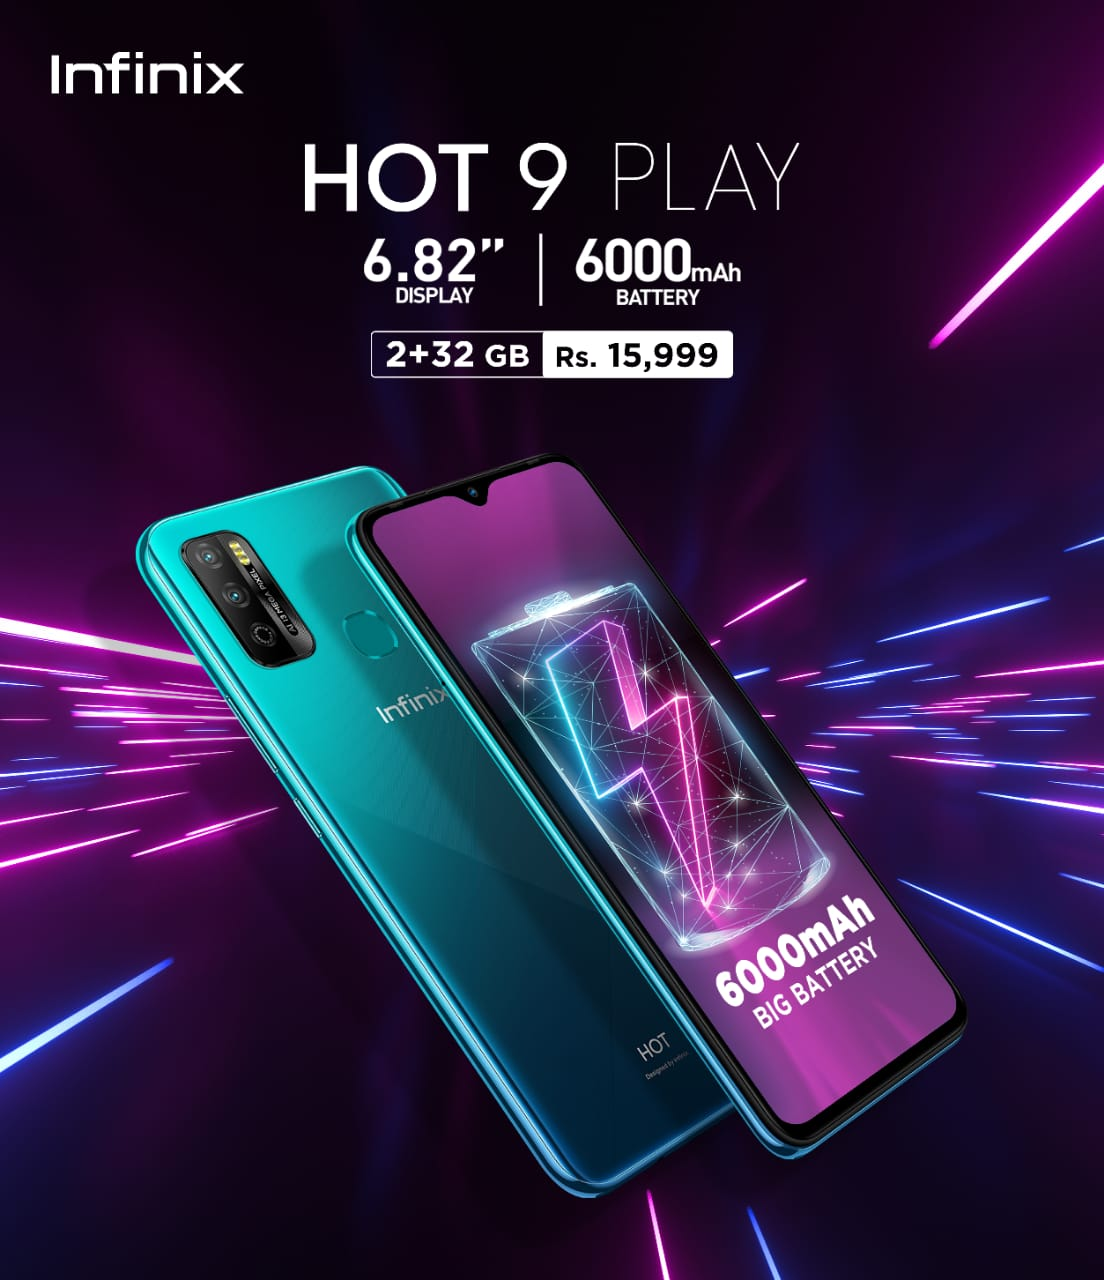 Infinix Launches Hot 9 play with Massive6000 mAhBattery - News Update Times